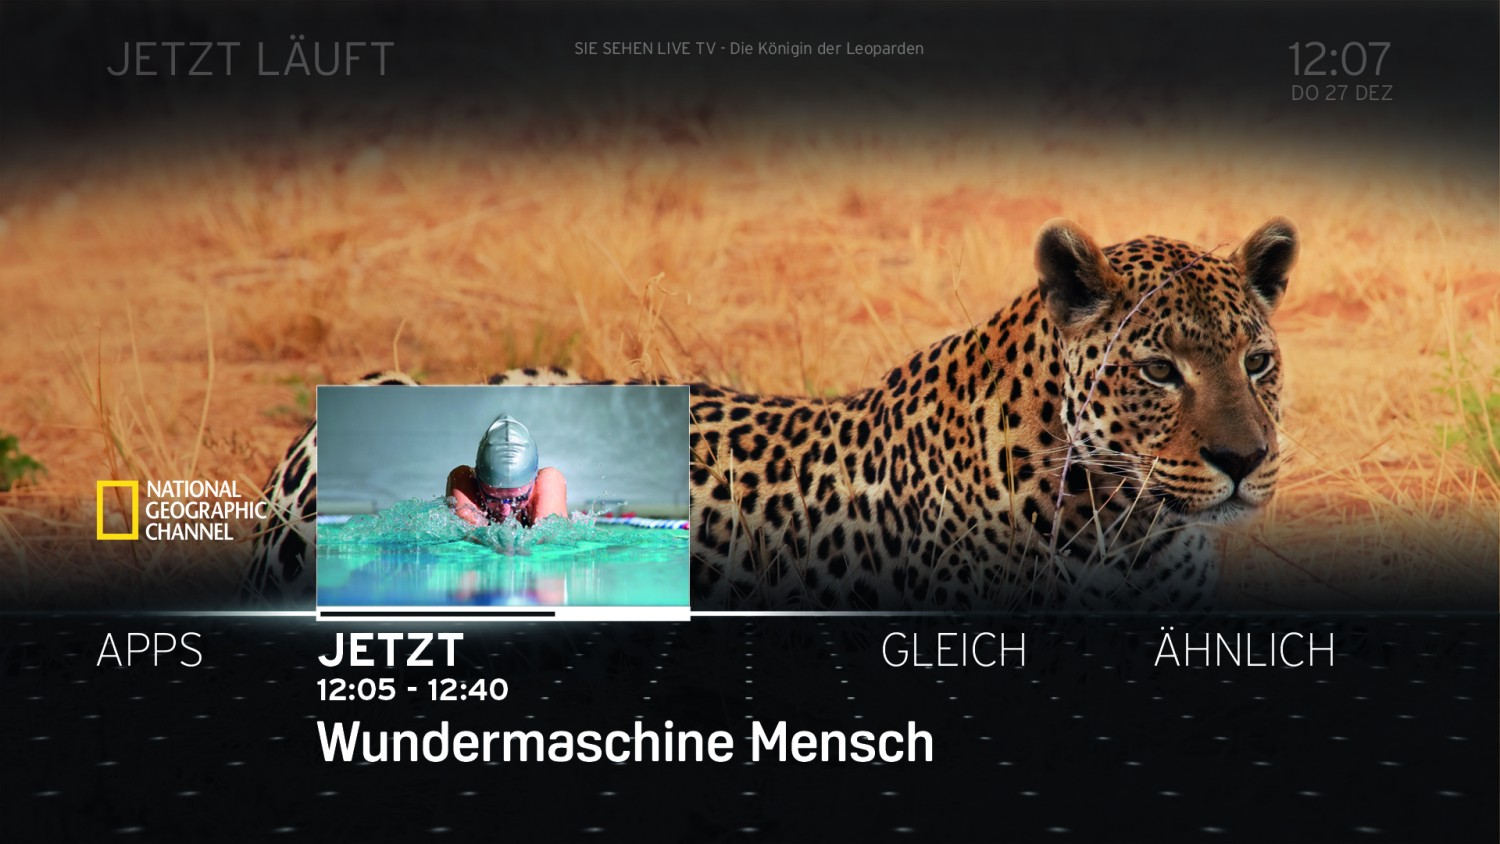 TV Multimediale TV-Plattform Horizon startet am 3. November bei Kabel BW - News, Bild 1